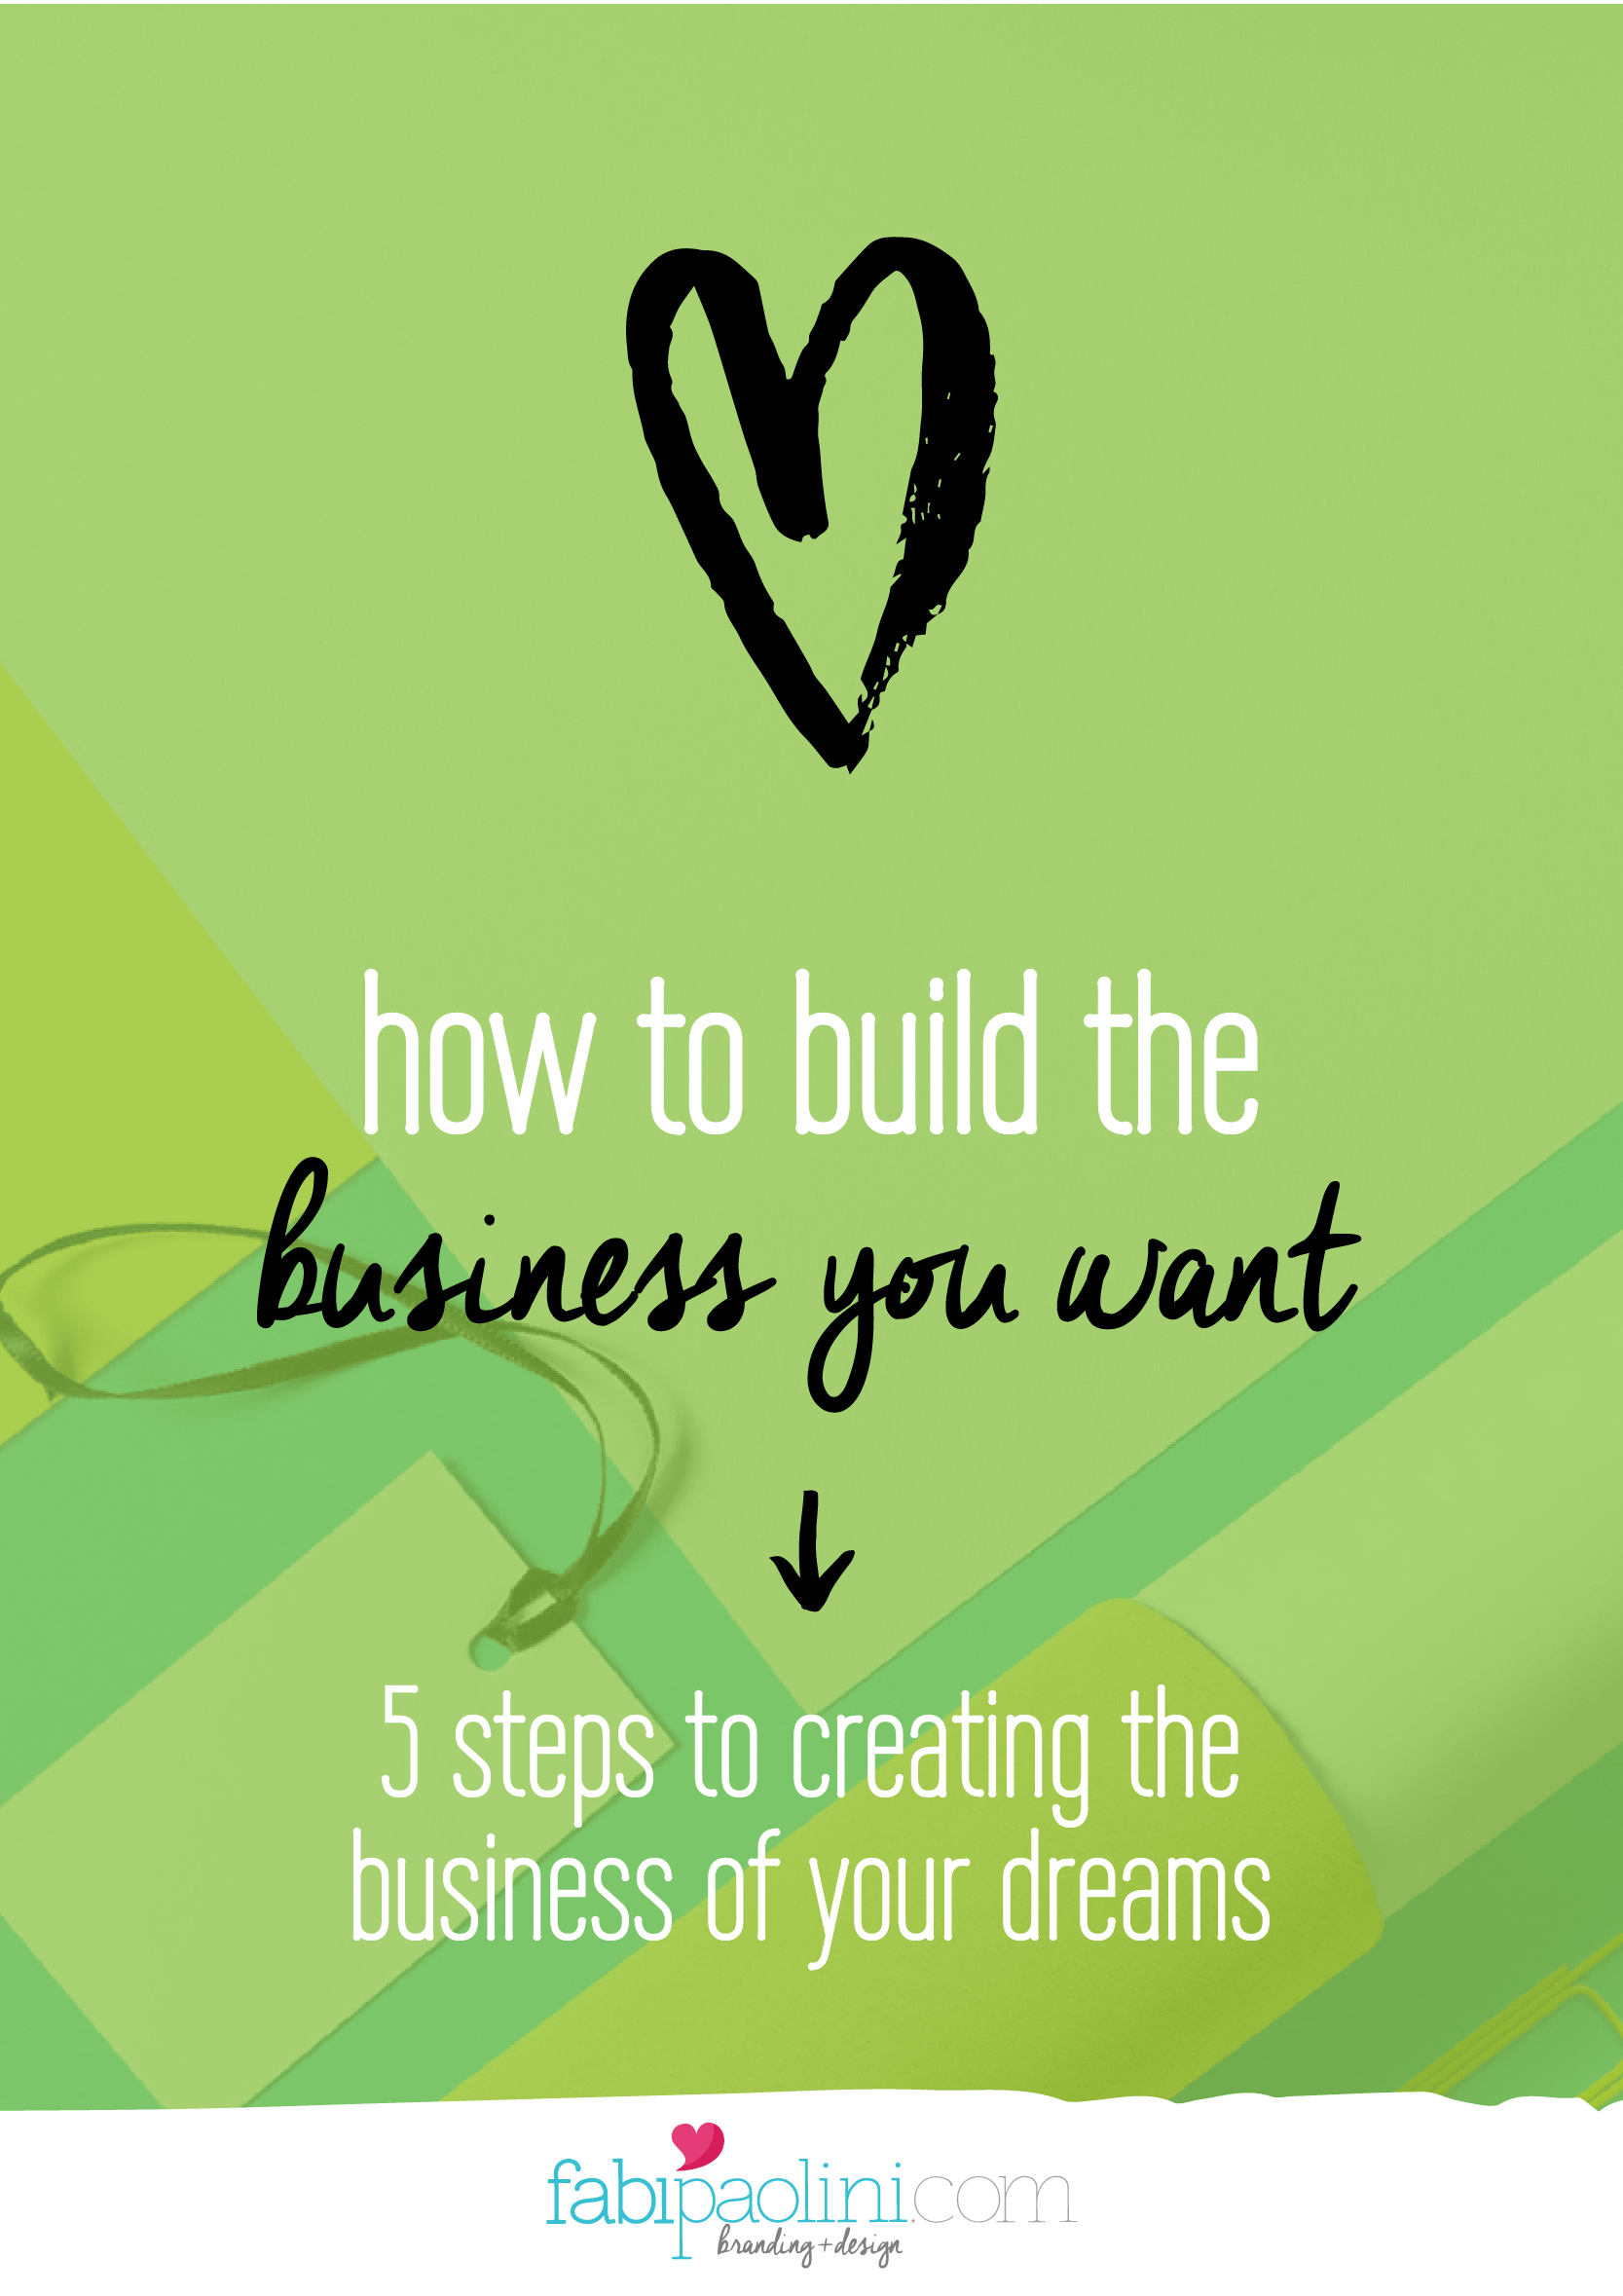 How to build the business you want. 5 steps to creating the business you love and dream of. Check it out!  There's a free guide inside